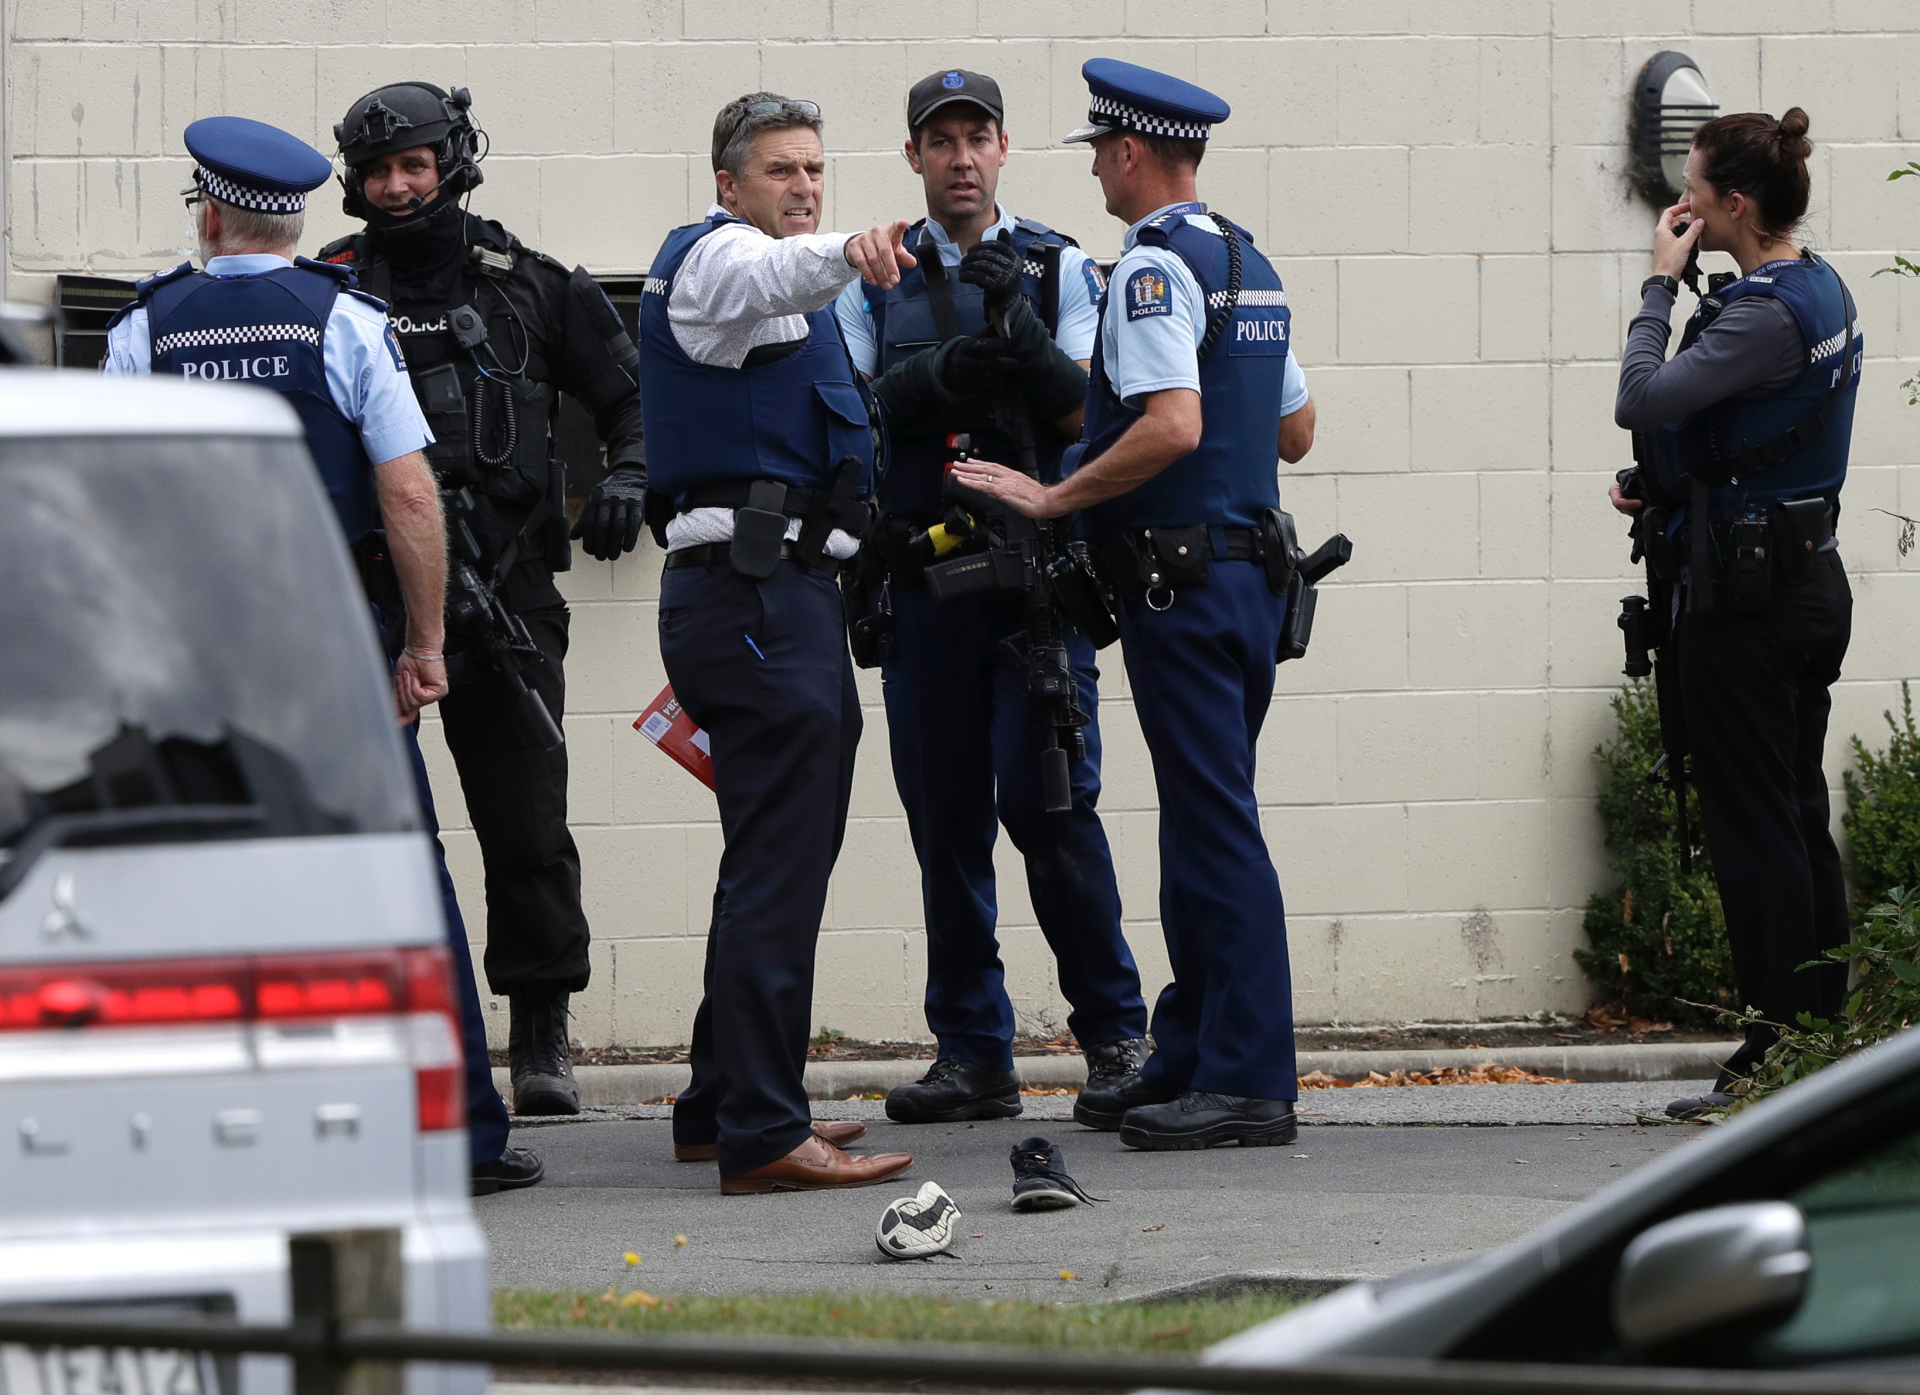 Westlake Legal Group ContentBroker_contentid-425ee674764e491fbe06555cd4c520cf Timeline of police response to New Zealand mosque attacks WELLINGTON, New Zealand fox-news/world/world-regions/pacific fox-news/world fnc/world fnc bf3c99e1-2106-557c-ba67-d7271d214951 Associated Press article